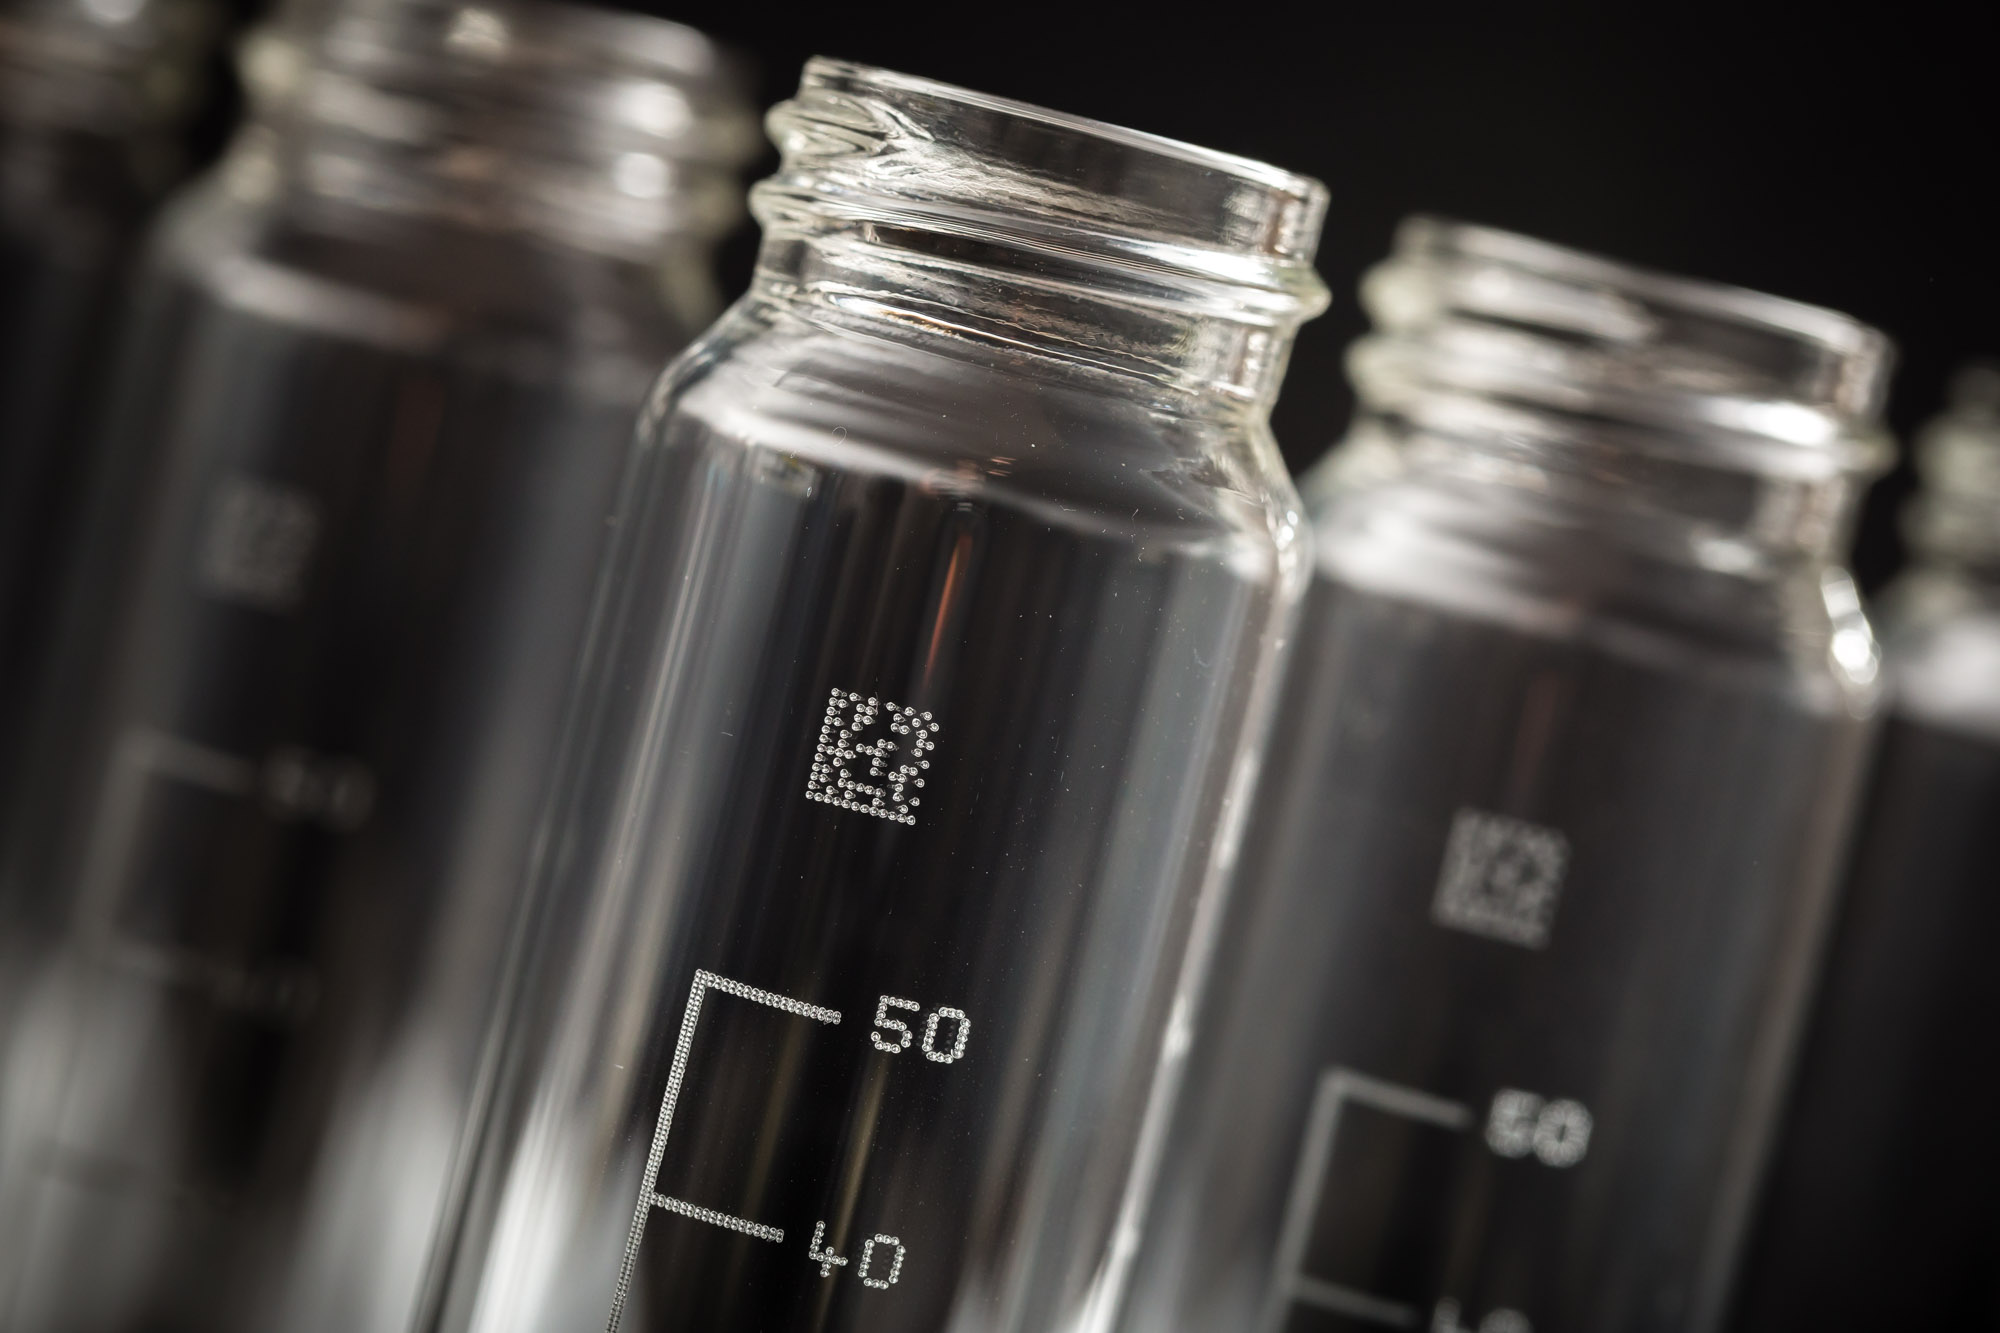 Laser marked glass vials